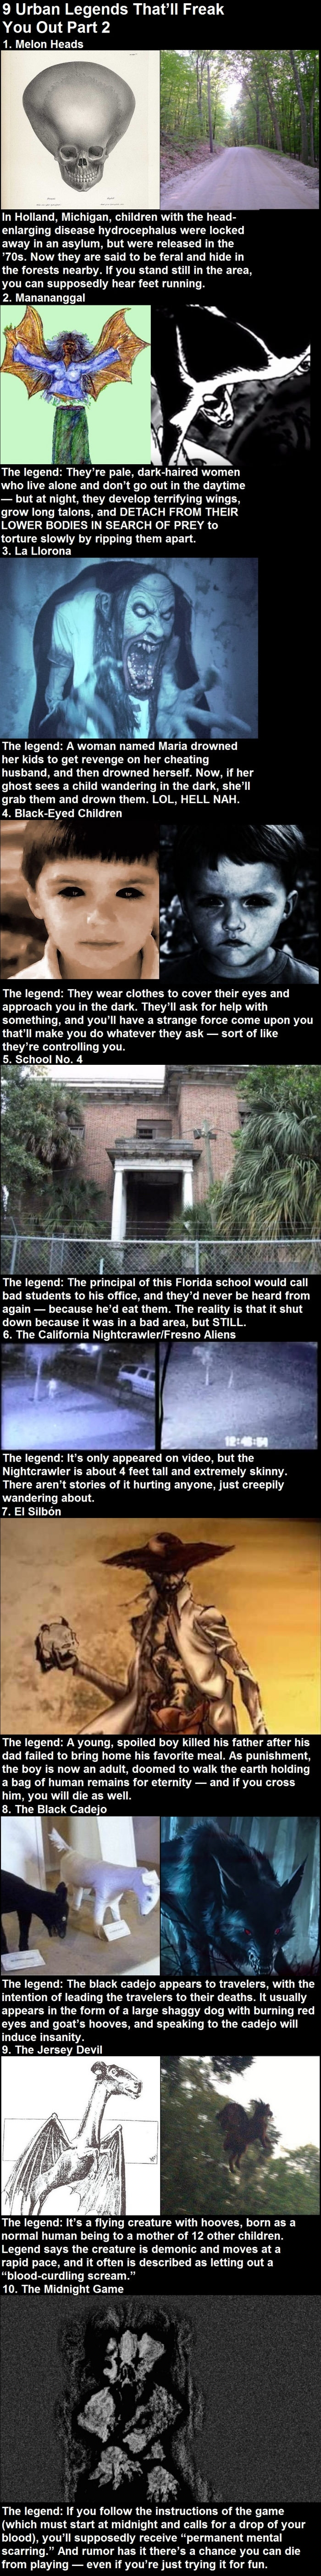 Urban legends that'll freak you out